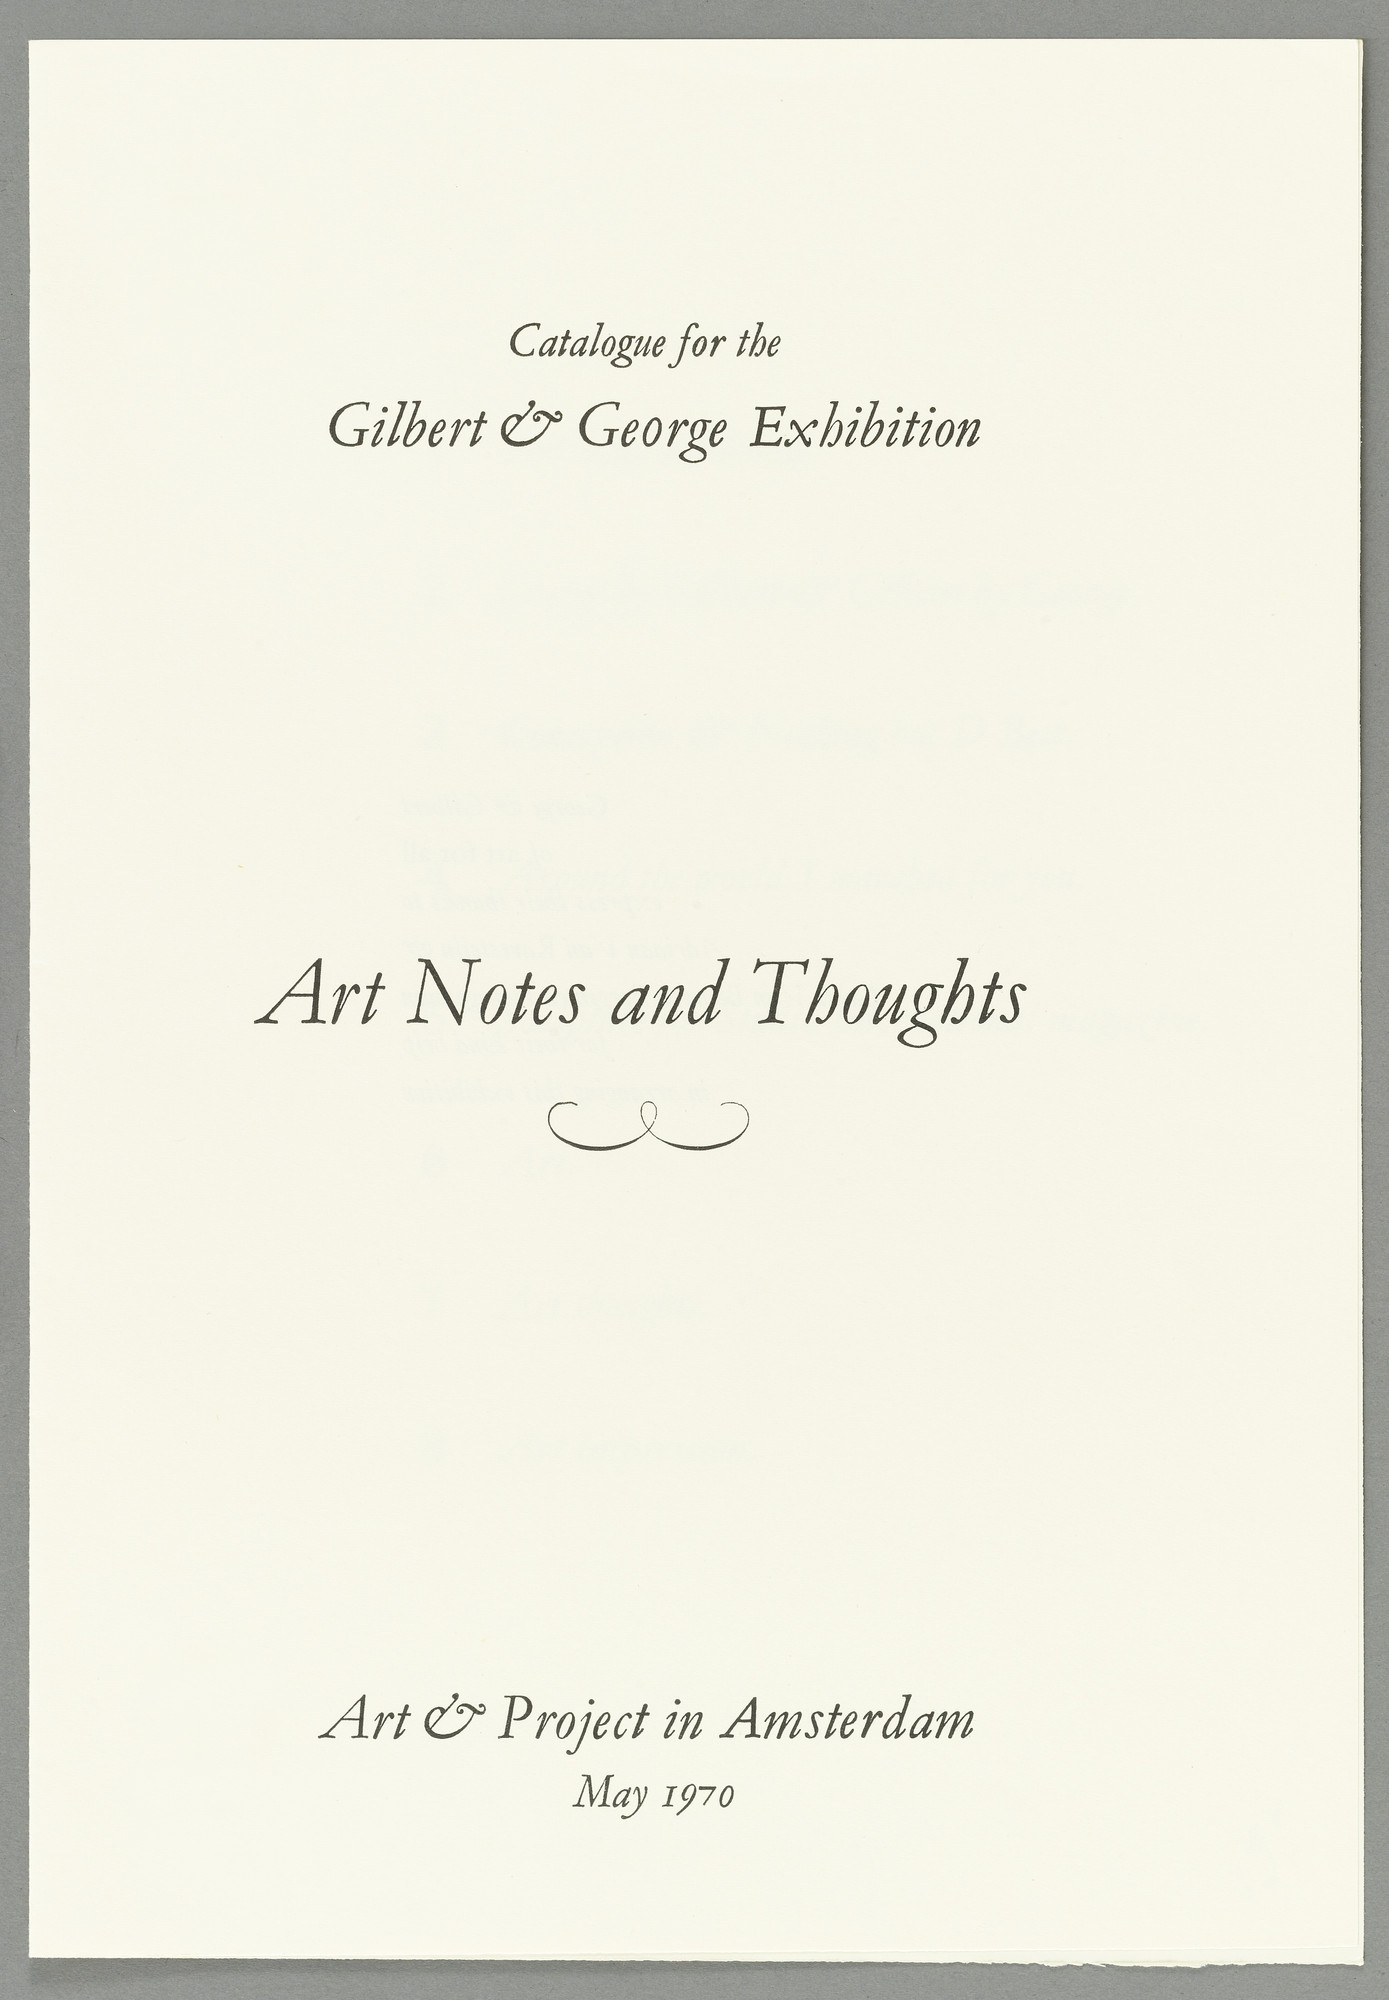 Gilbert & George, Gilbert Proesch, George Passmore. Art Notes and Thoughts. 1970